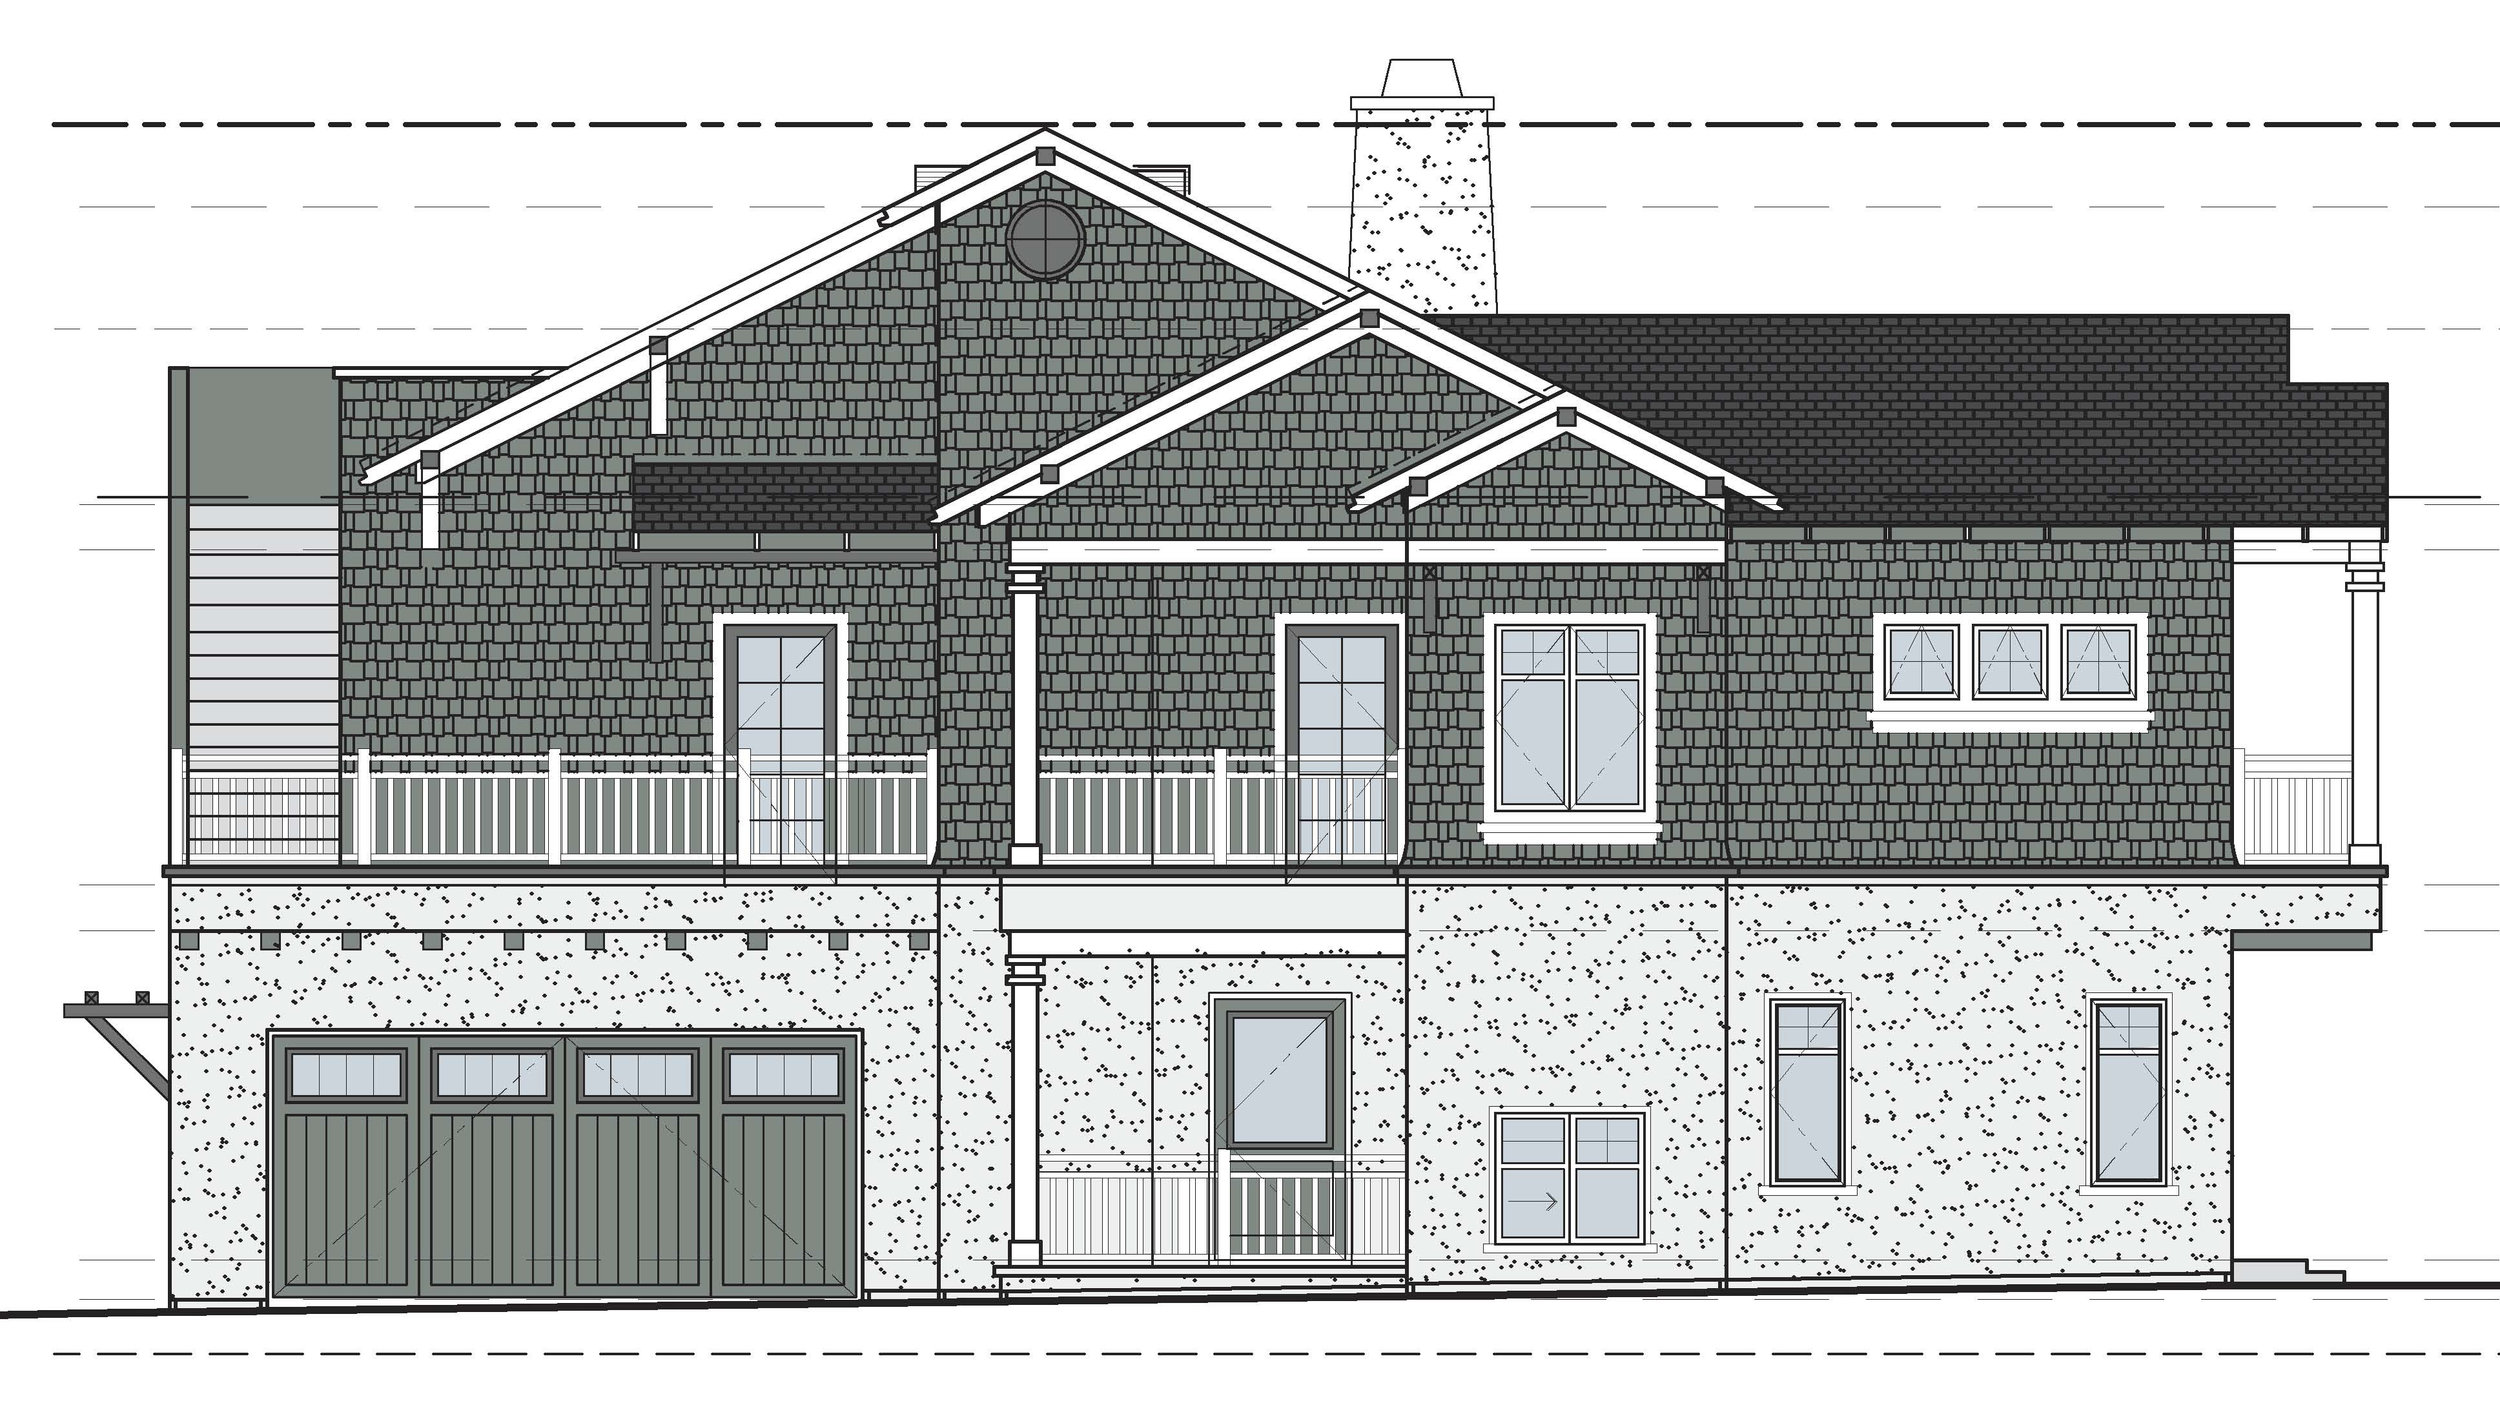 Plan lV Elevation